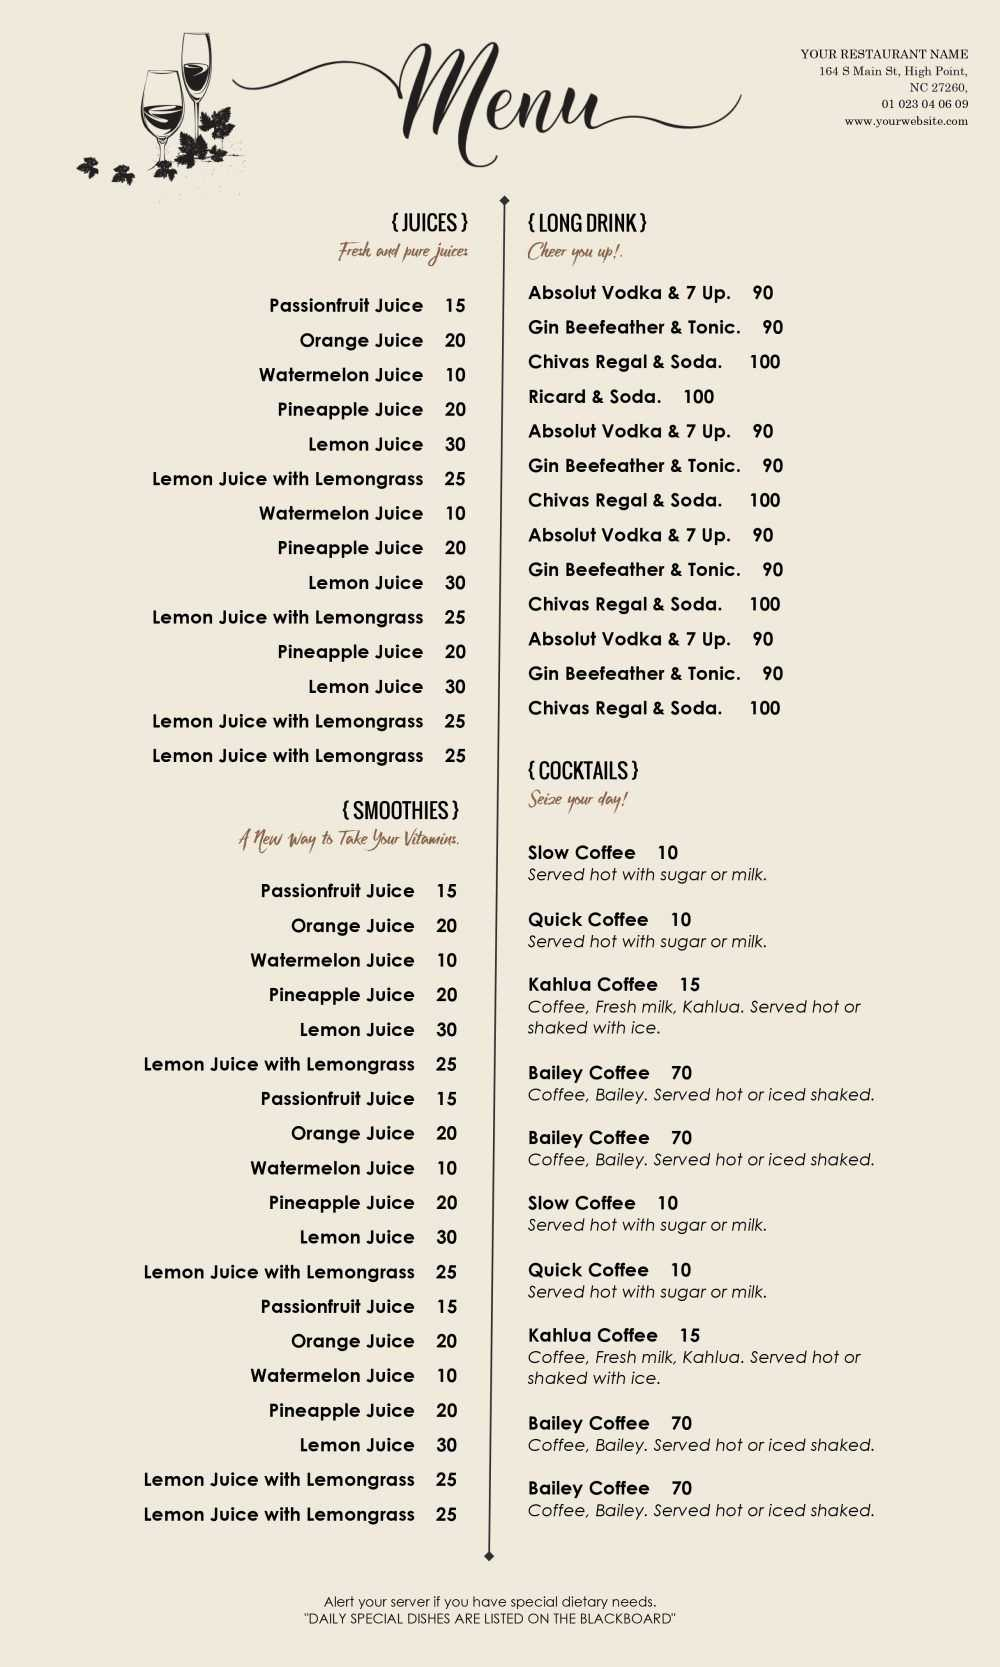 Menu - Id06 | Restaurants | Free Menu Templates, Menu regarding Free Cafe Menu Templates For Word